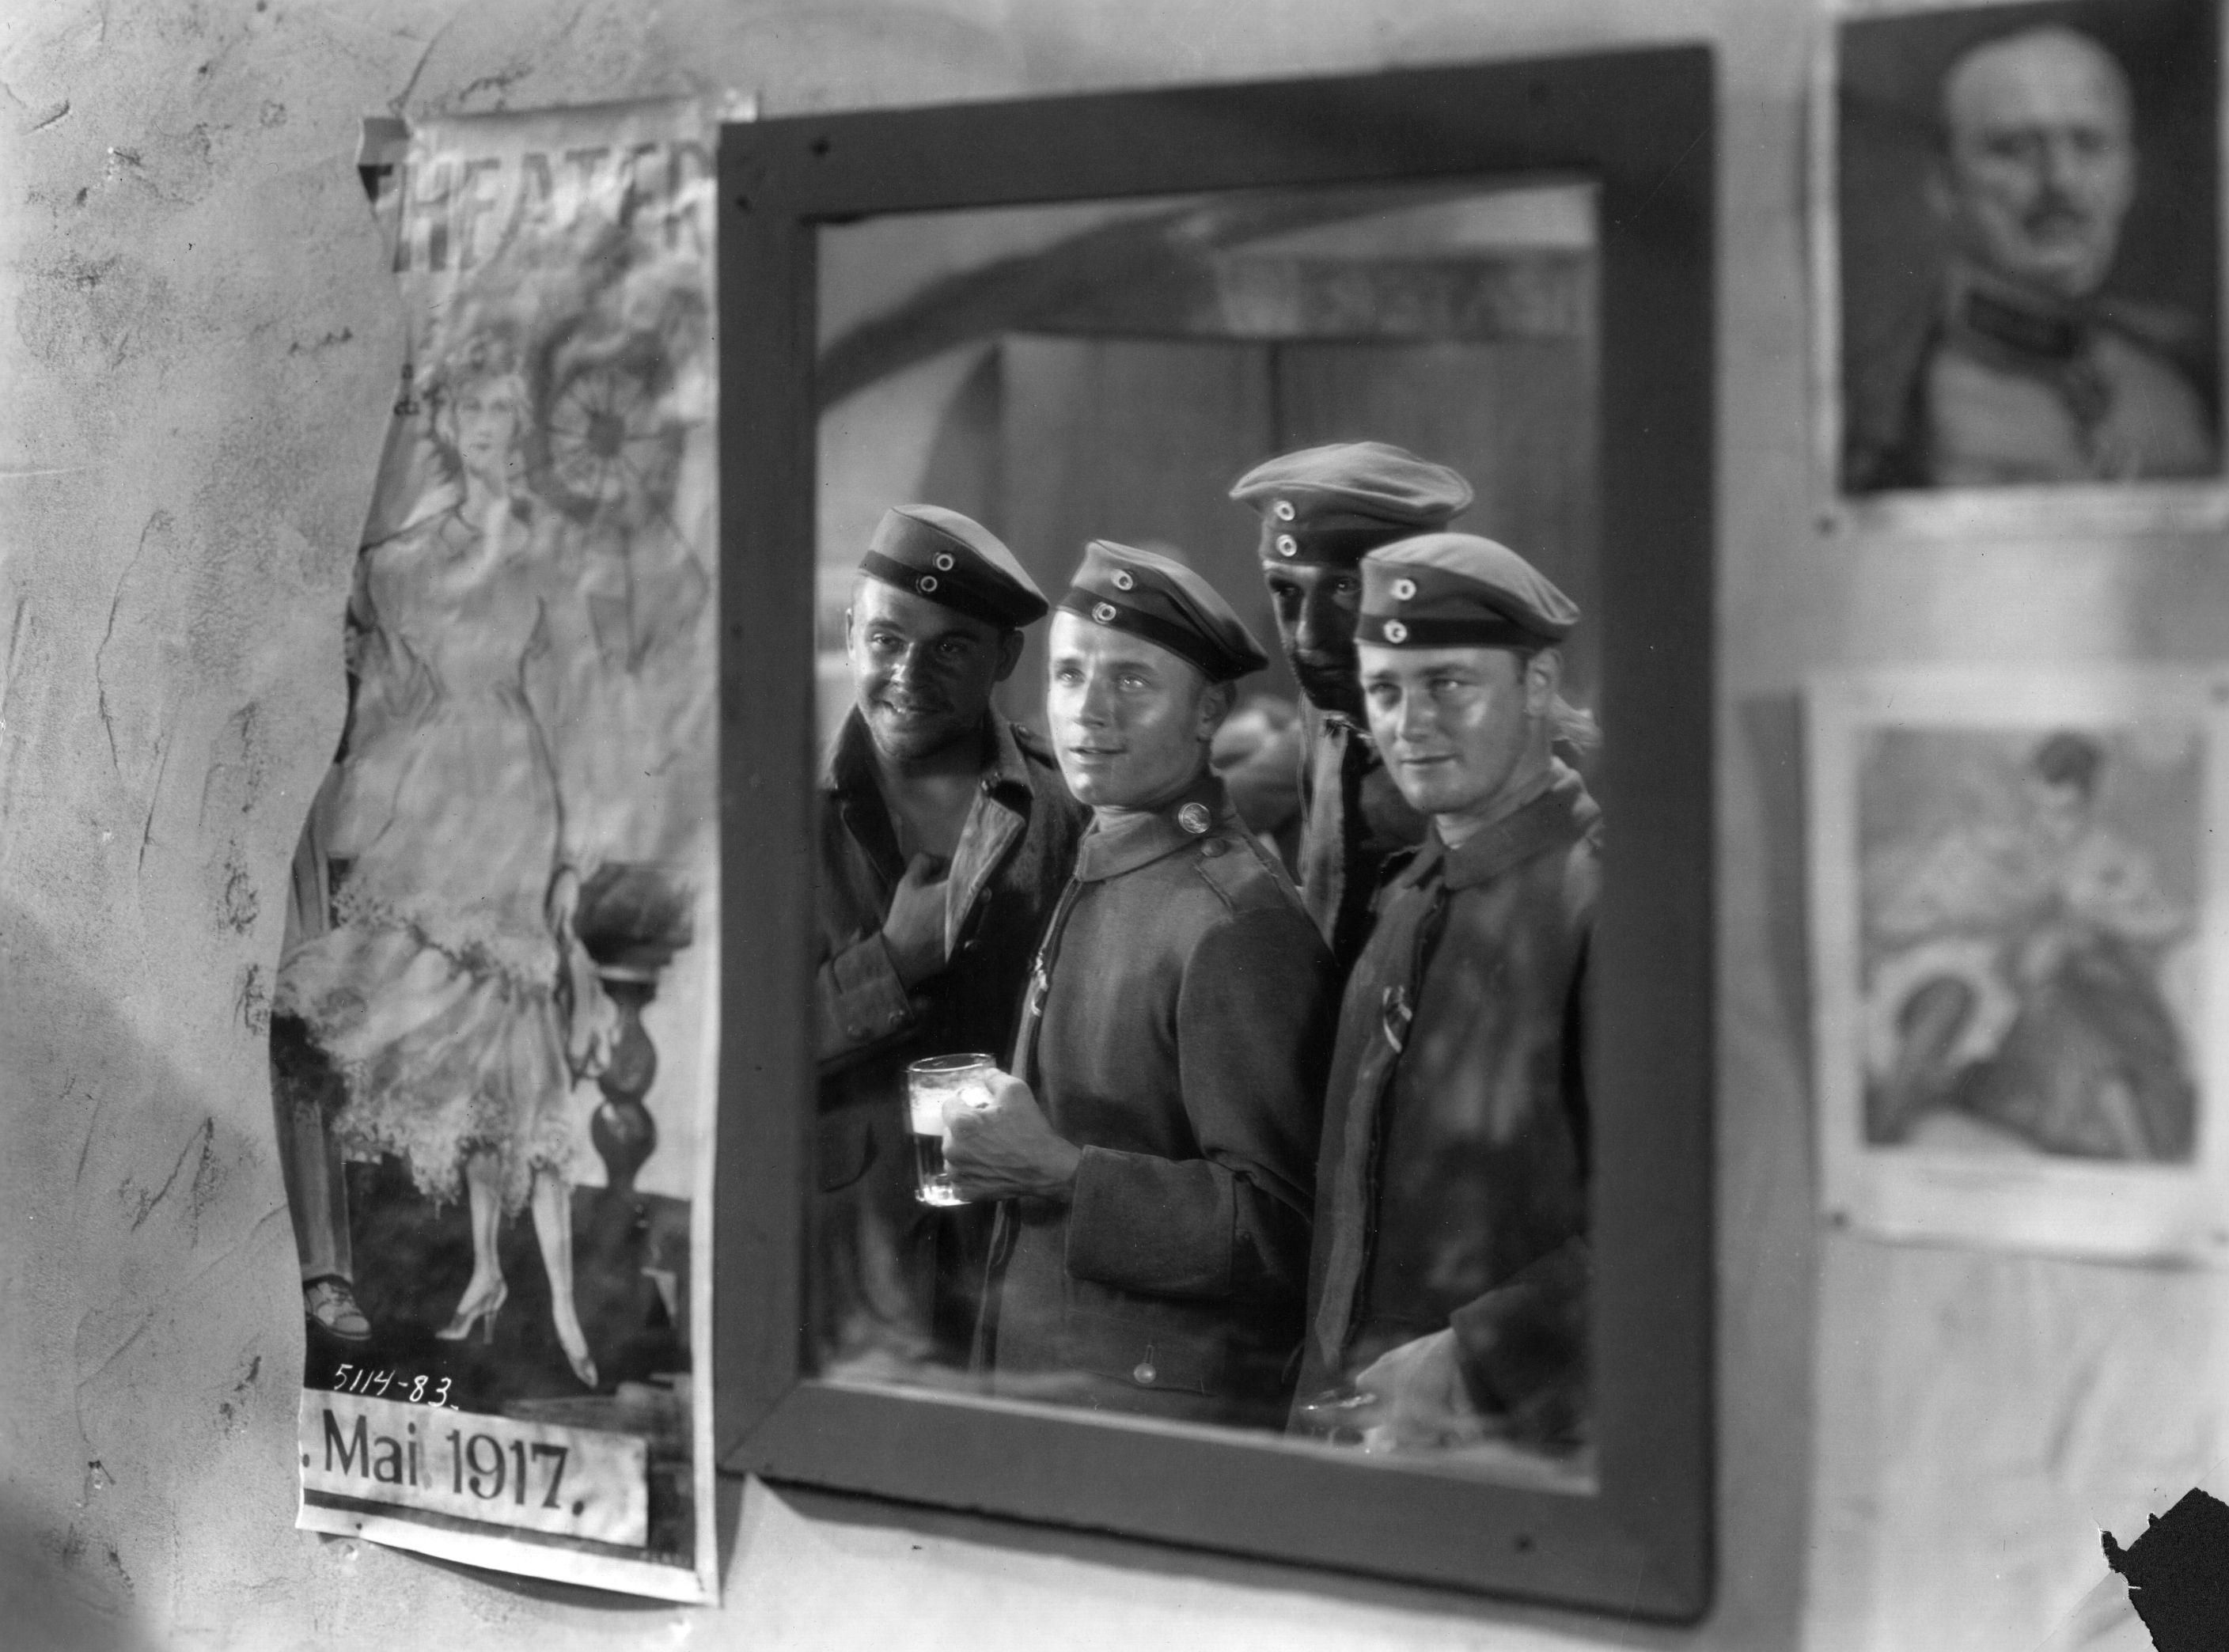 Scene from the movie All QUiet On The Western Front with 4 soldiers looking into a mirror